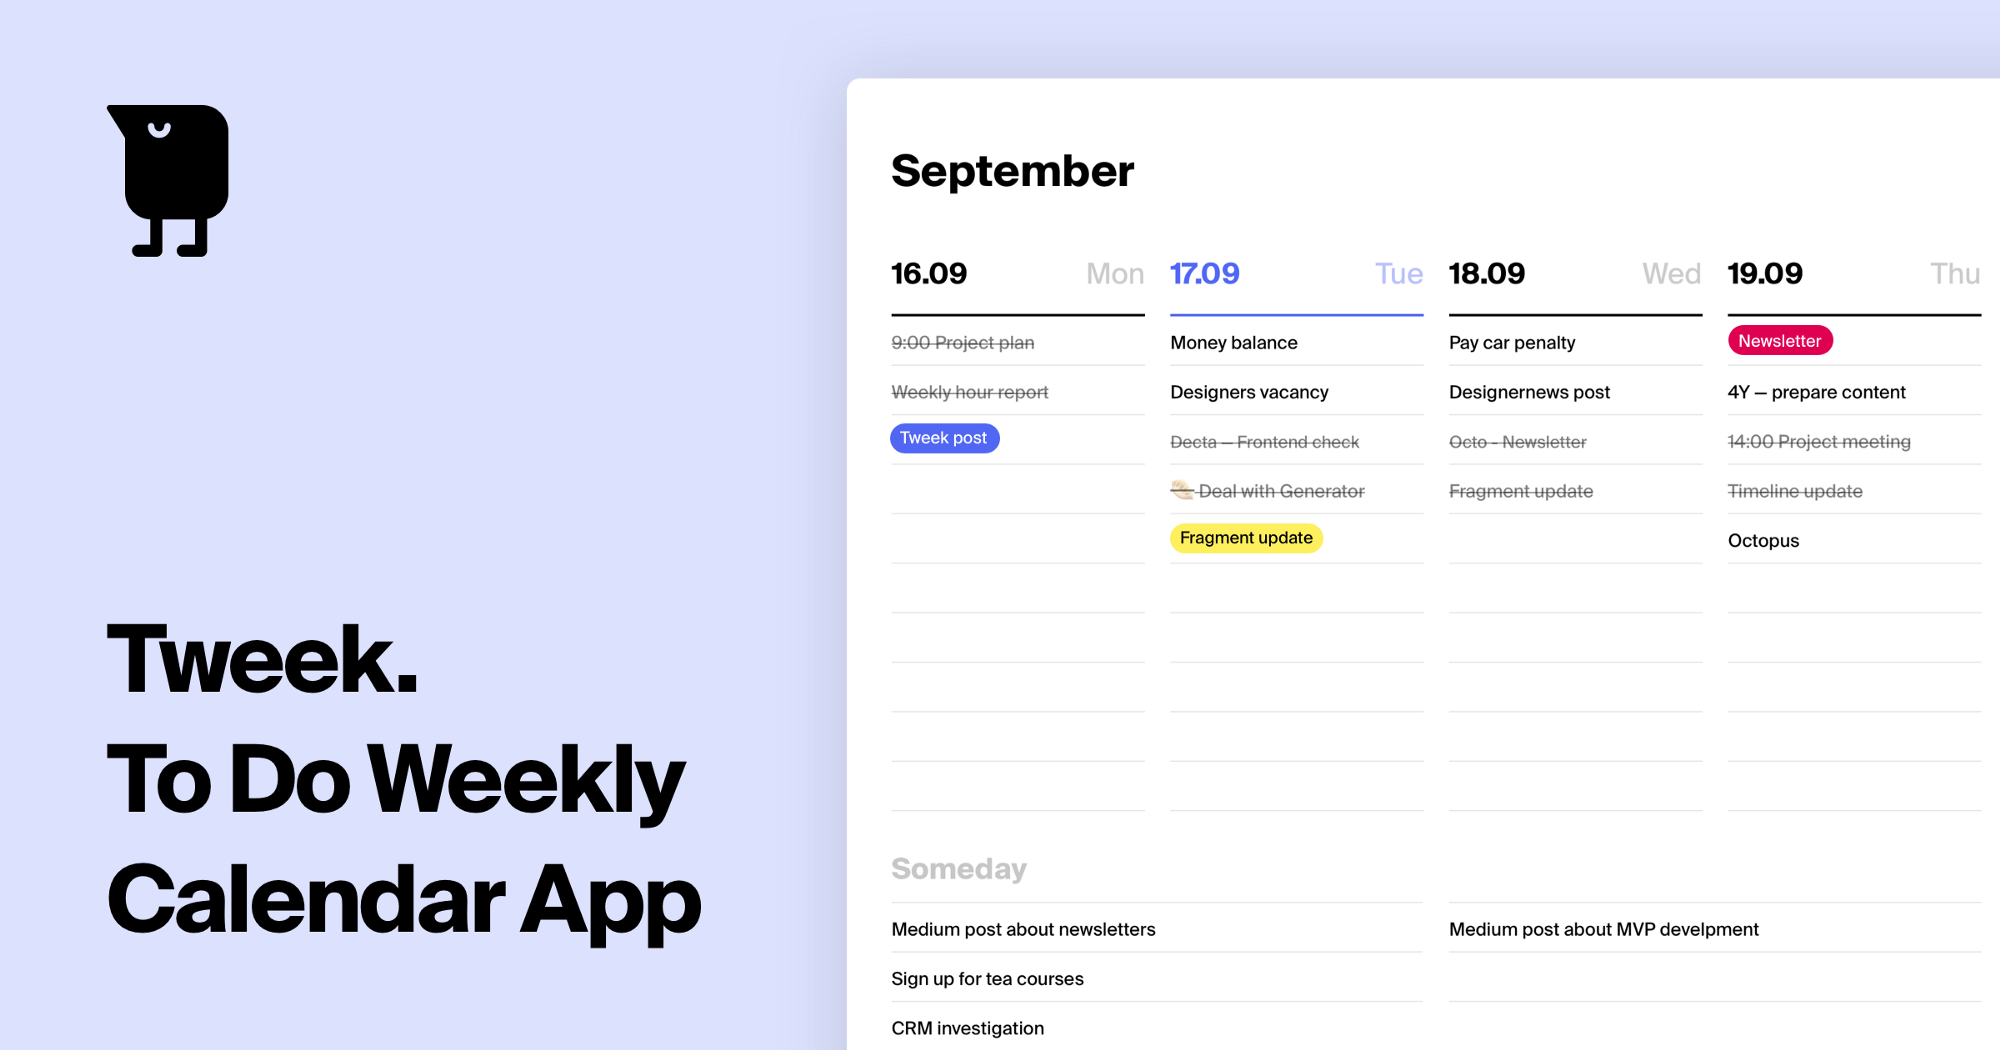 A promotional image for the Tweek app. It shows a weekly to-do list for September against a light blue background.